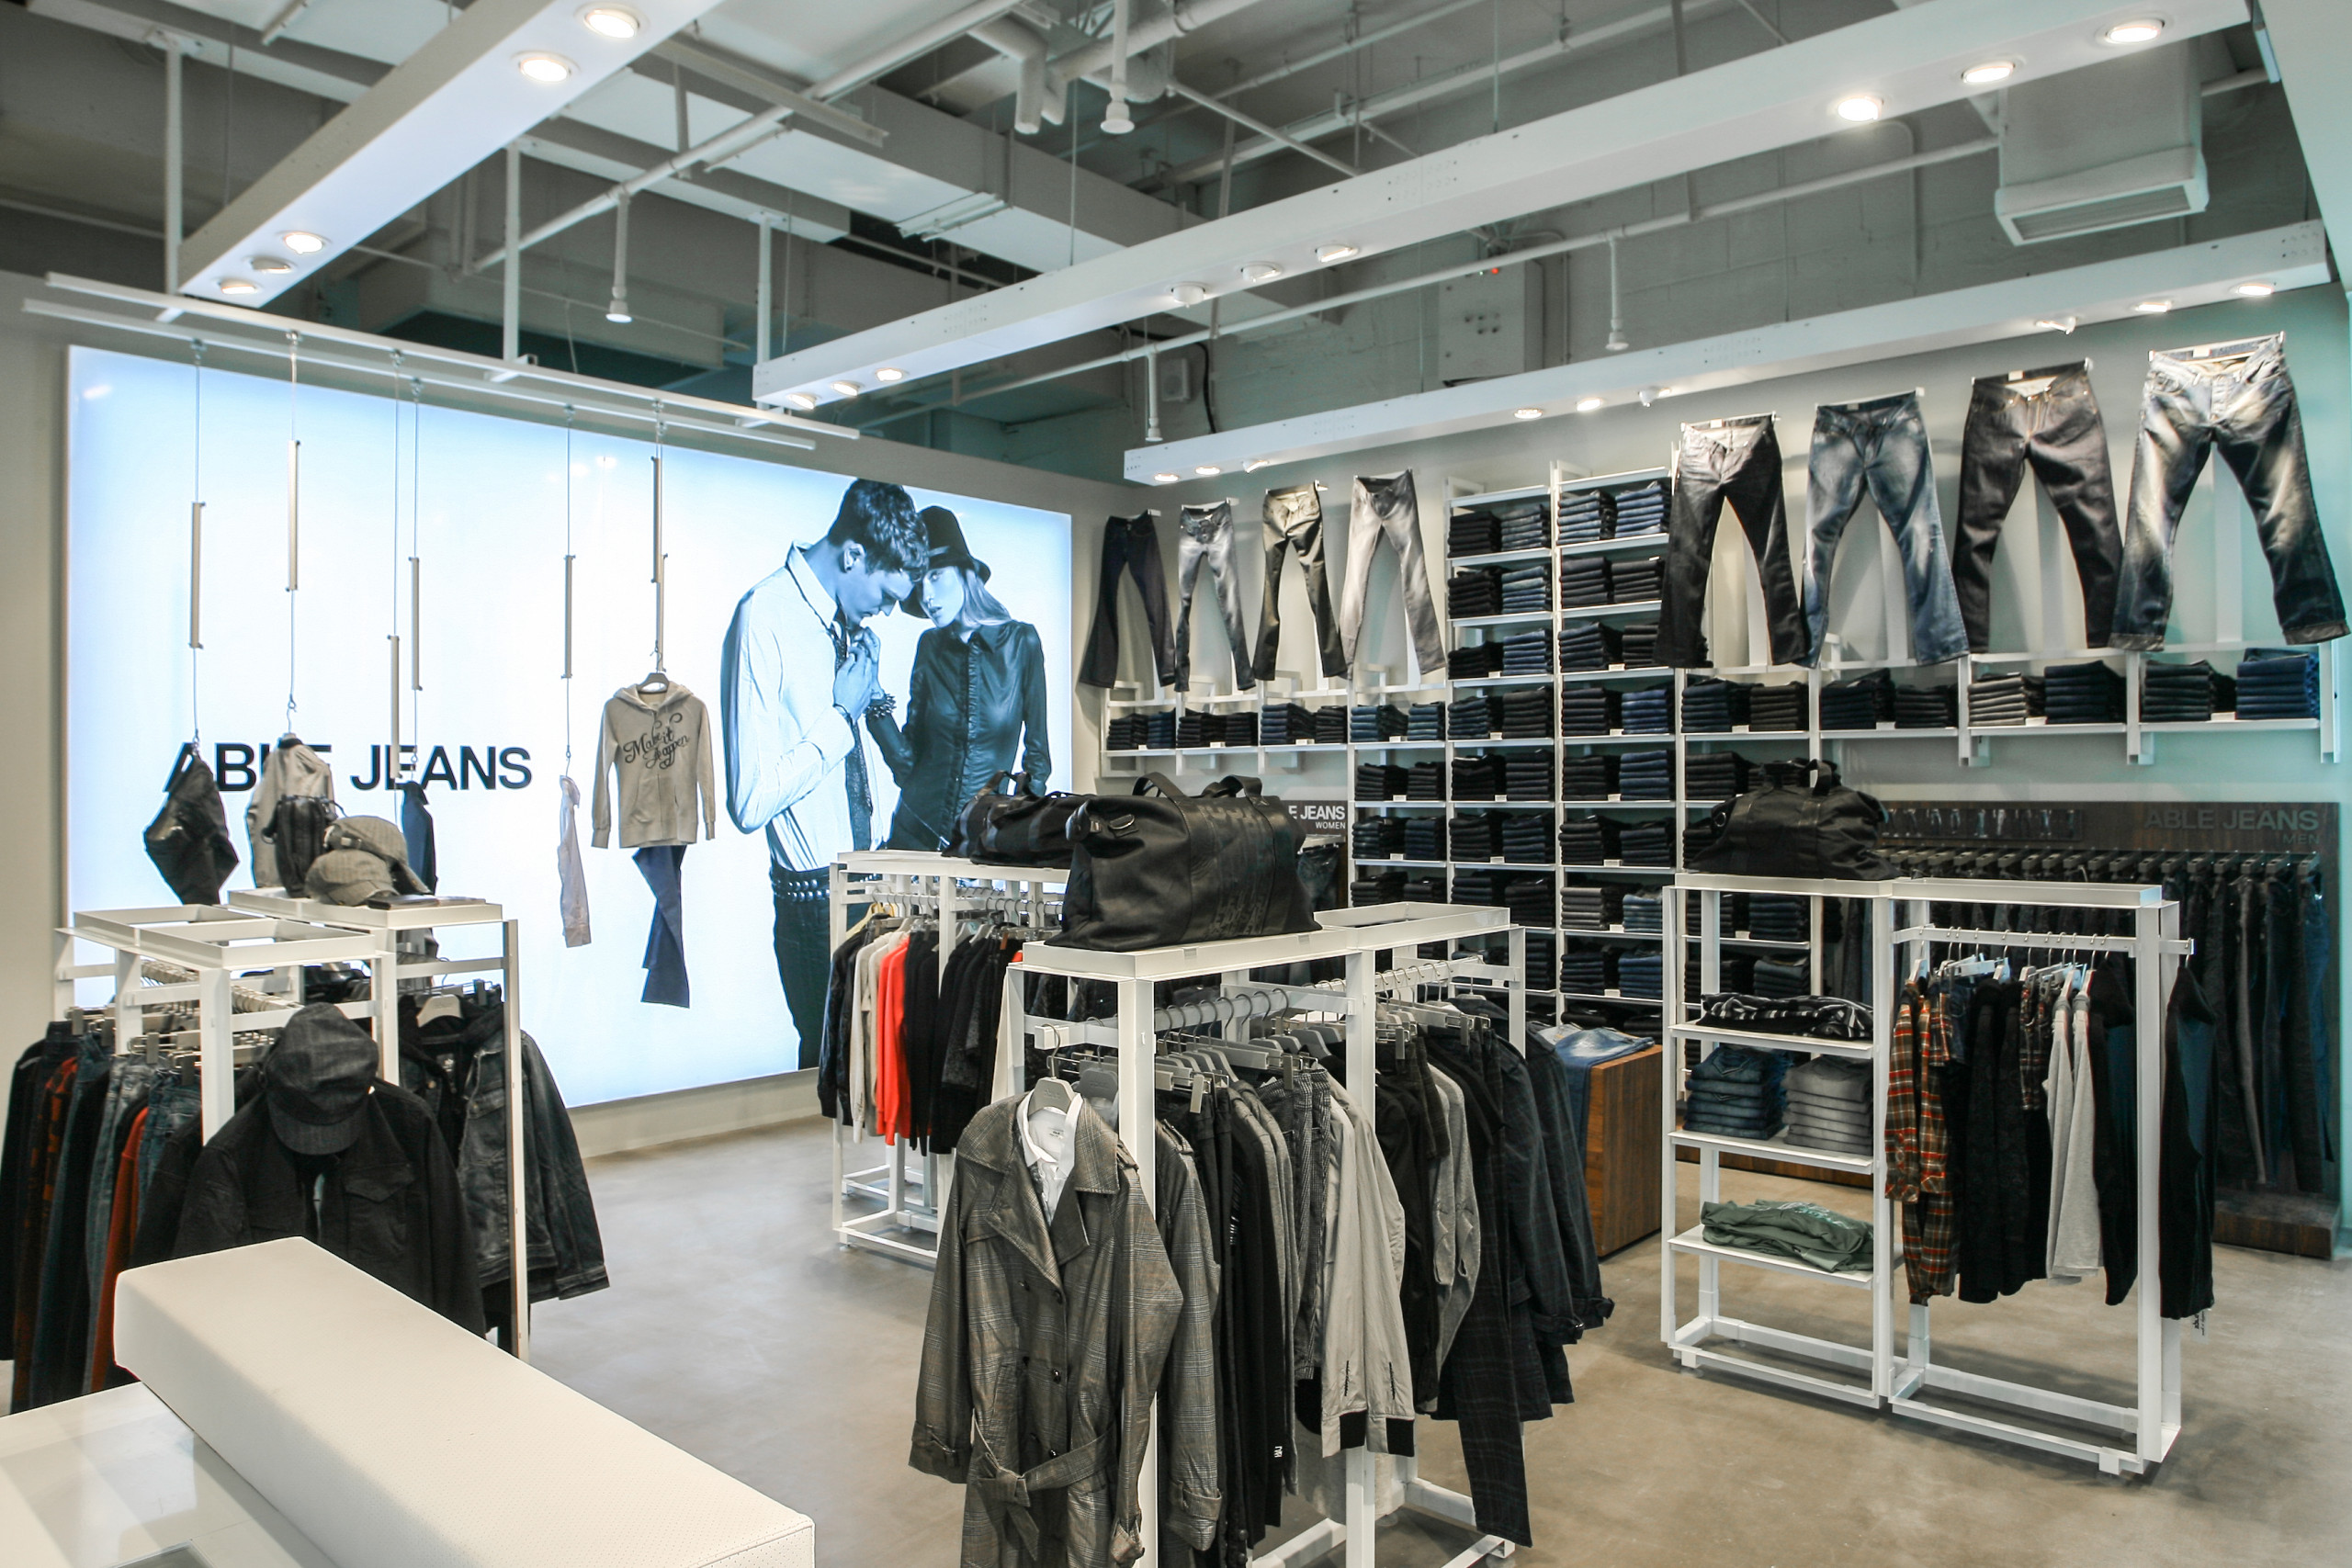 Able jeans flagship store Shanghai product display design